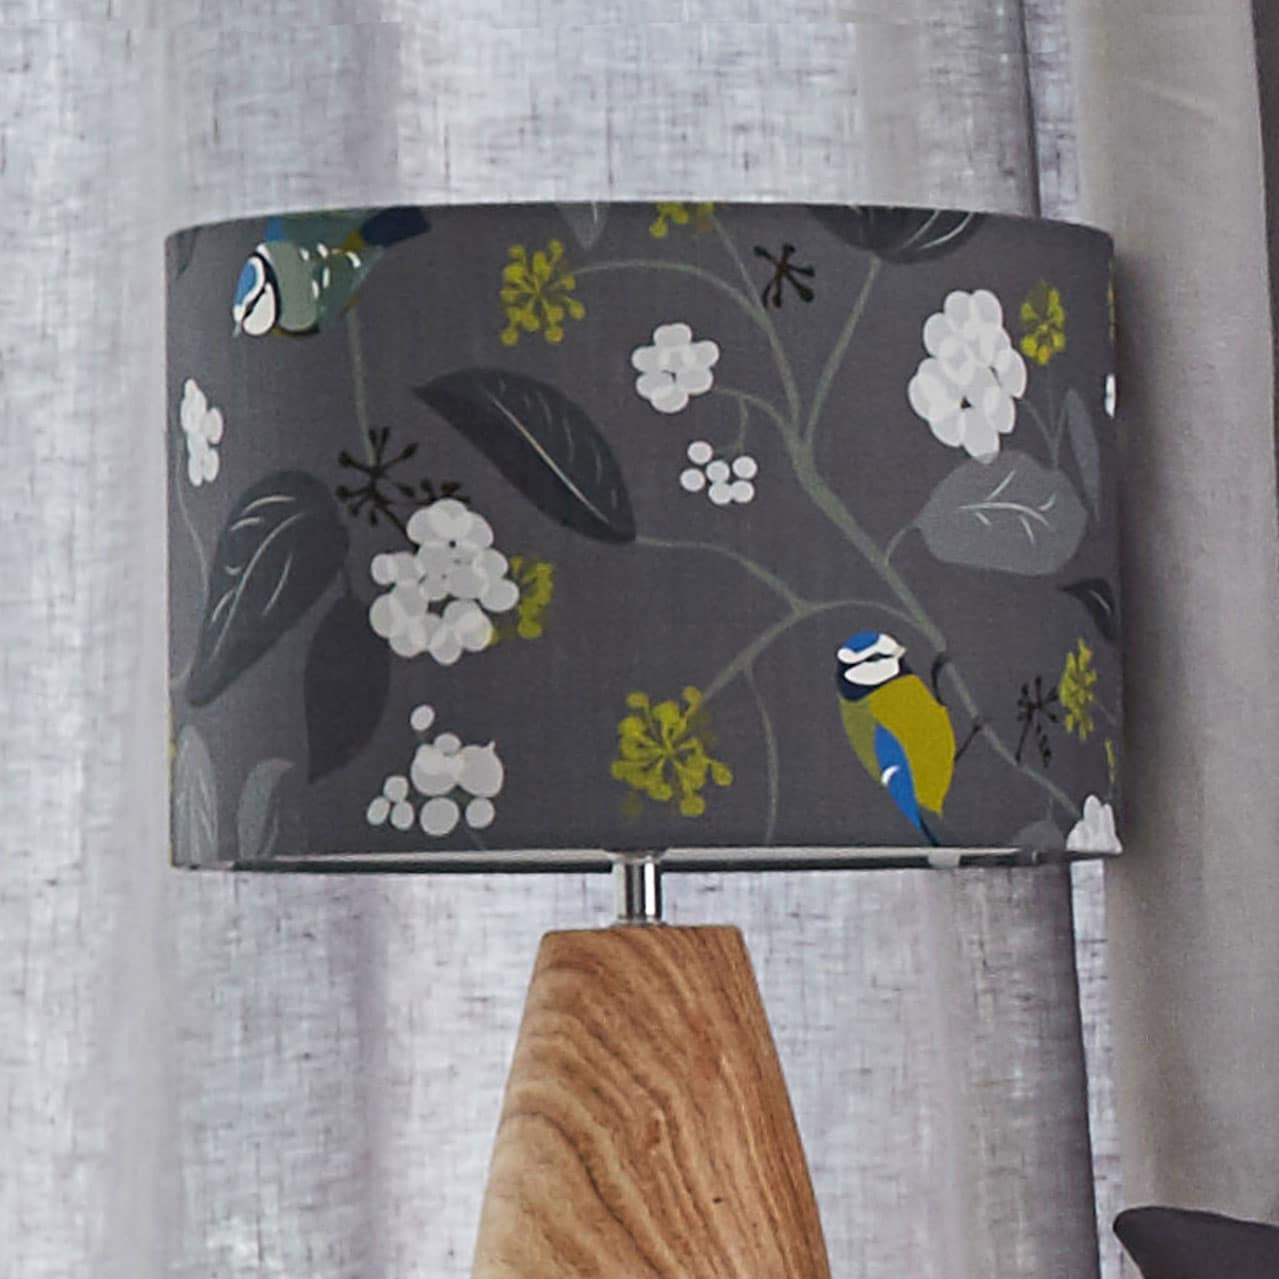 blue tit lampshade - bird and Ivy design - blue tit - lorna syson homeware